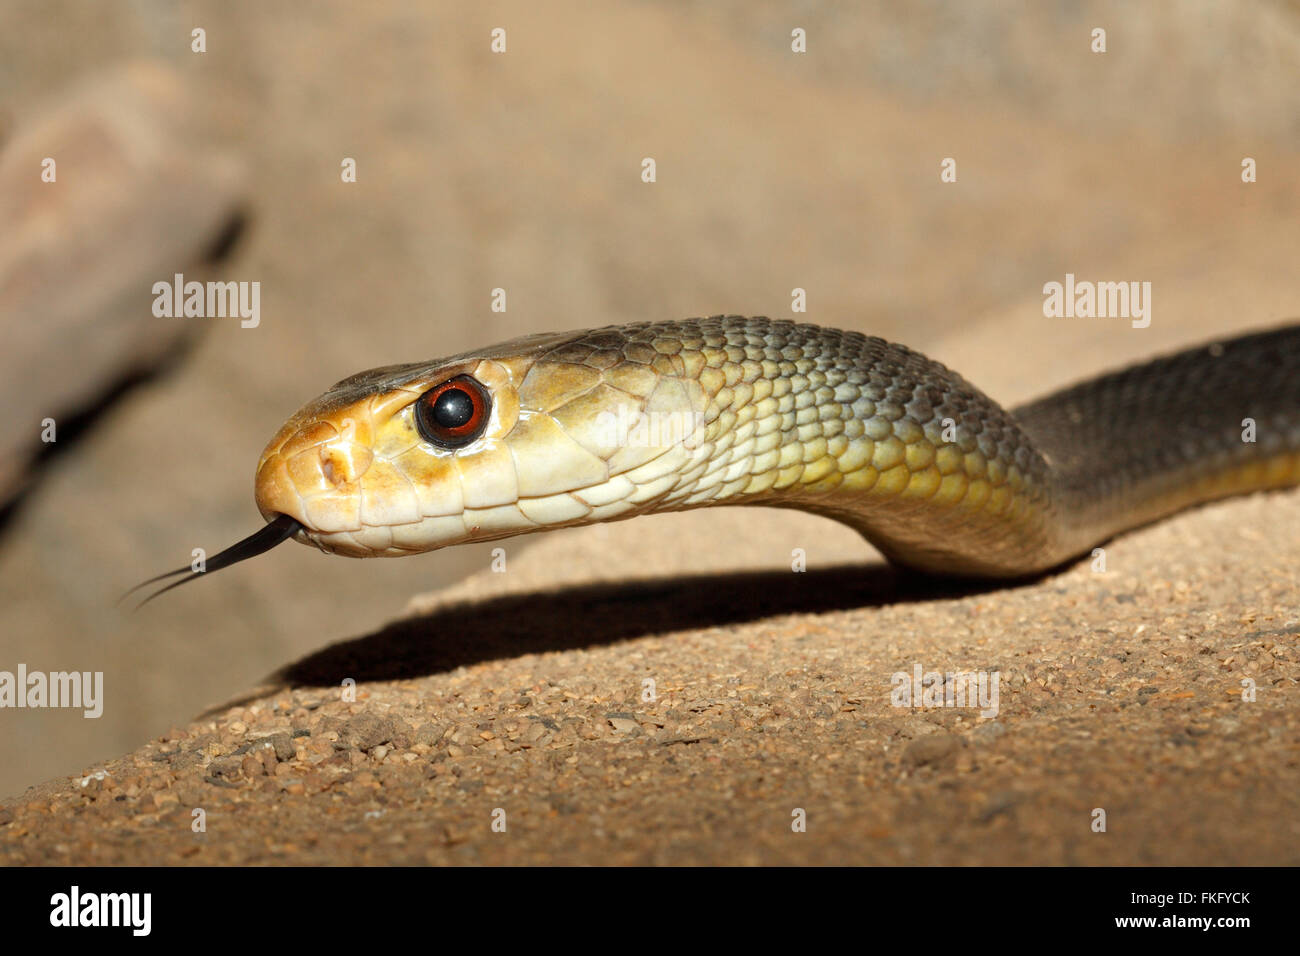 coastal-taipan-snake-oxyuranus-scutellatus-found-in-australia-and-FKFYCK.jpg